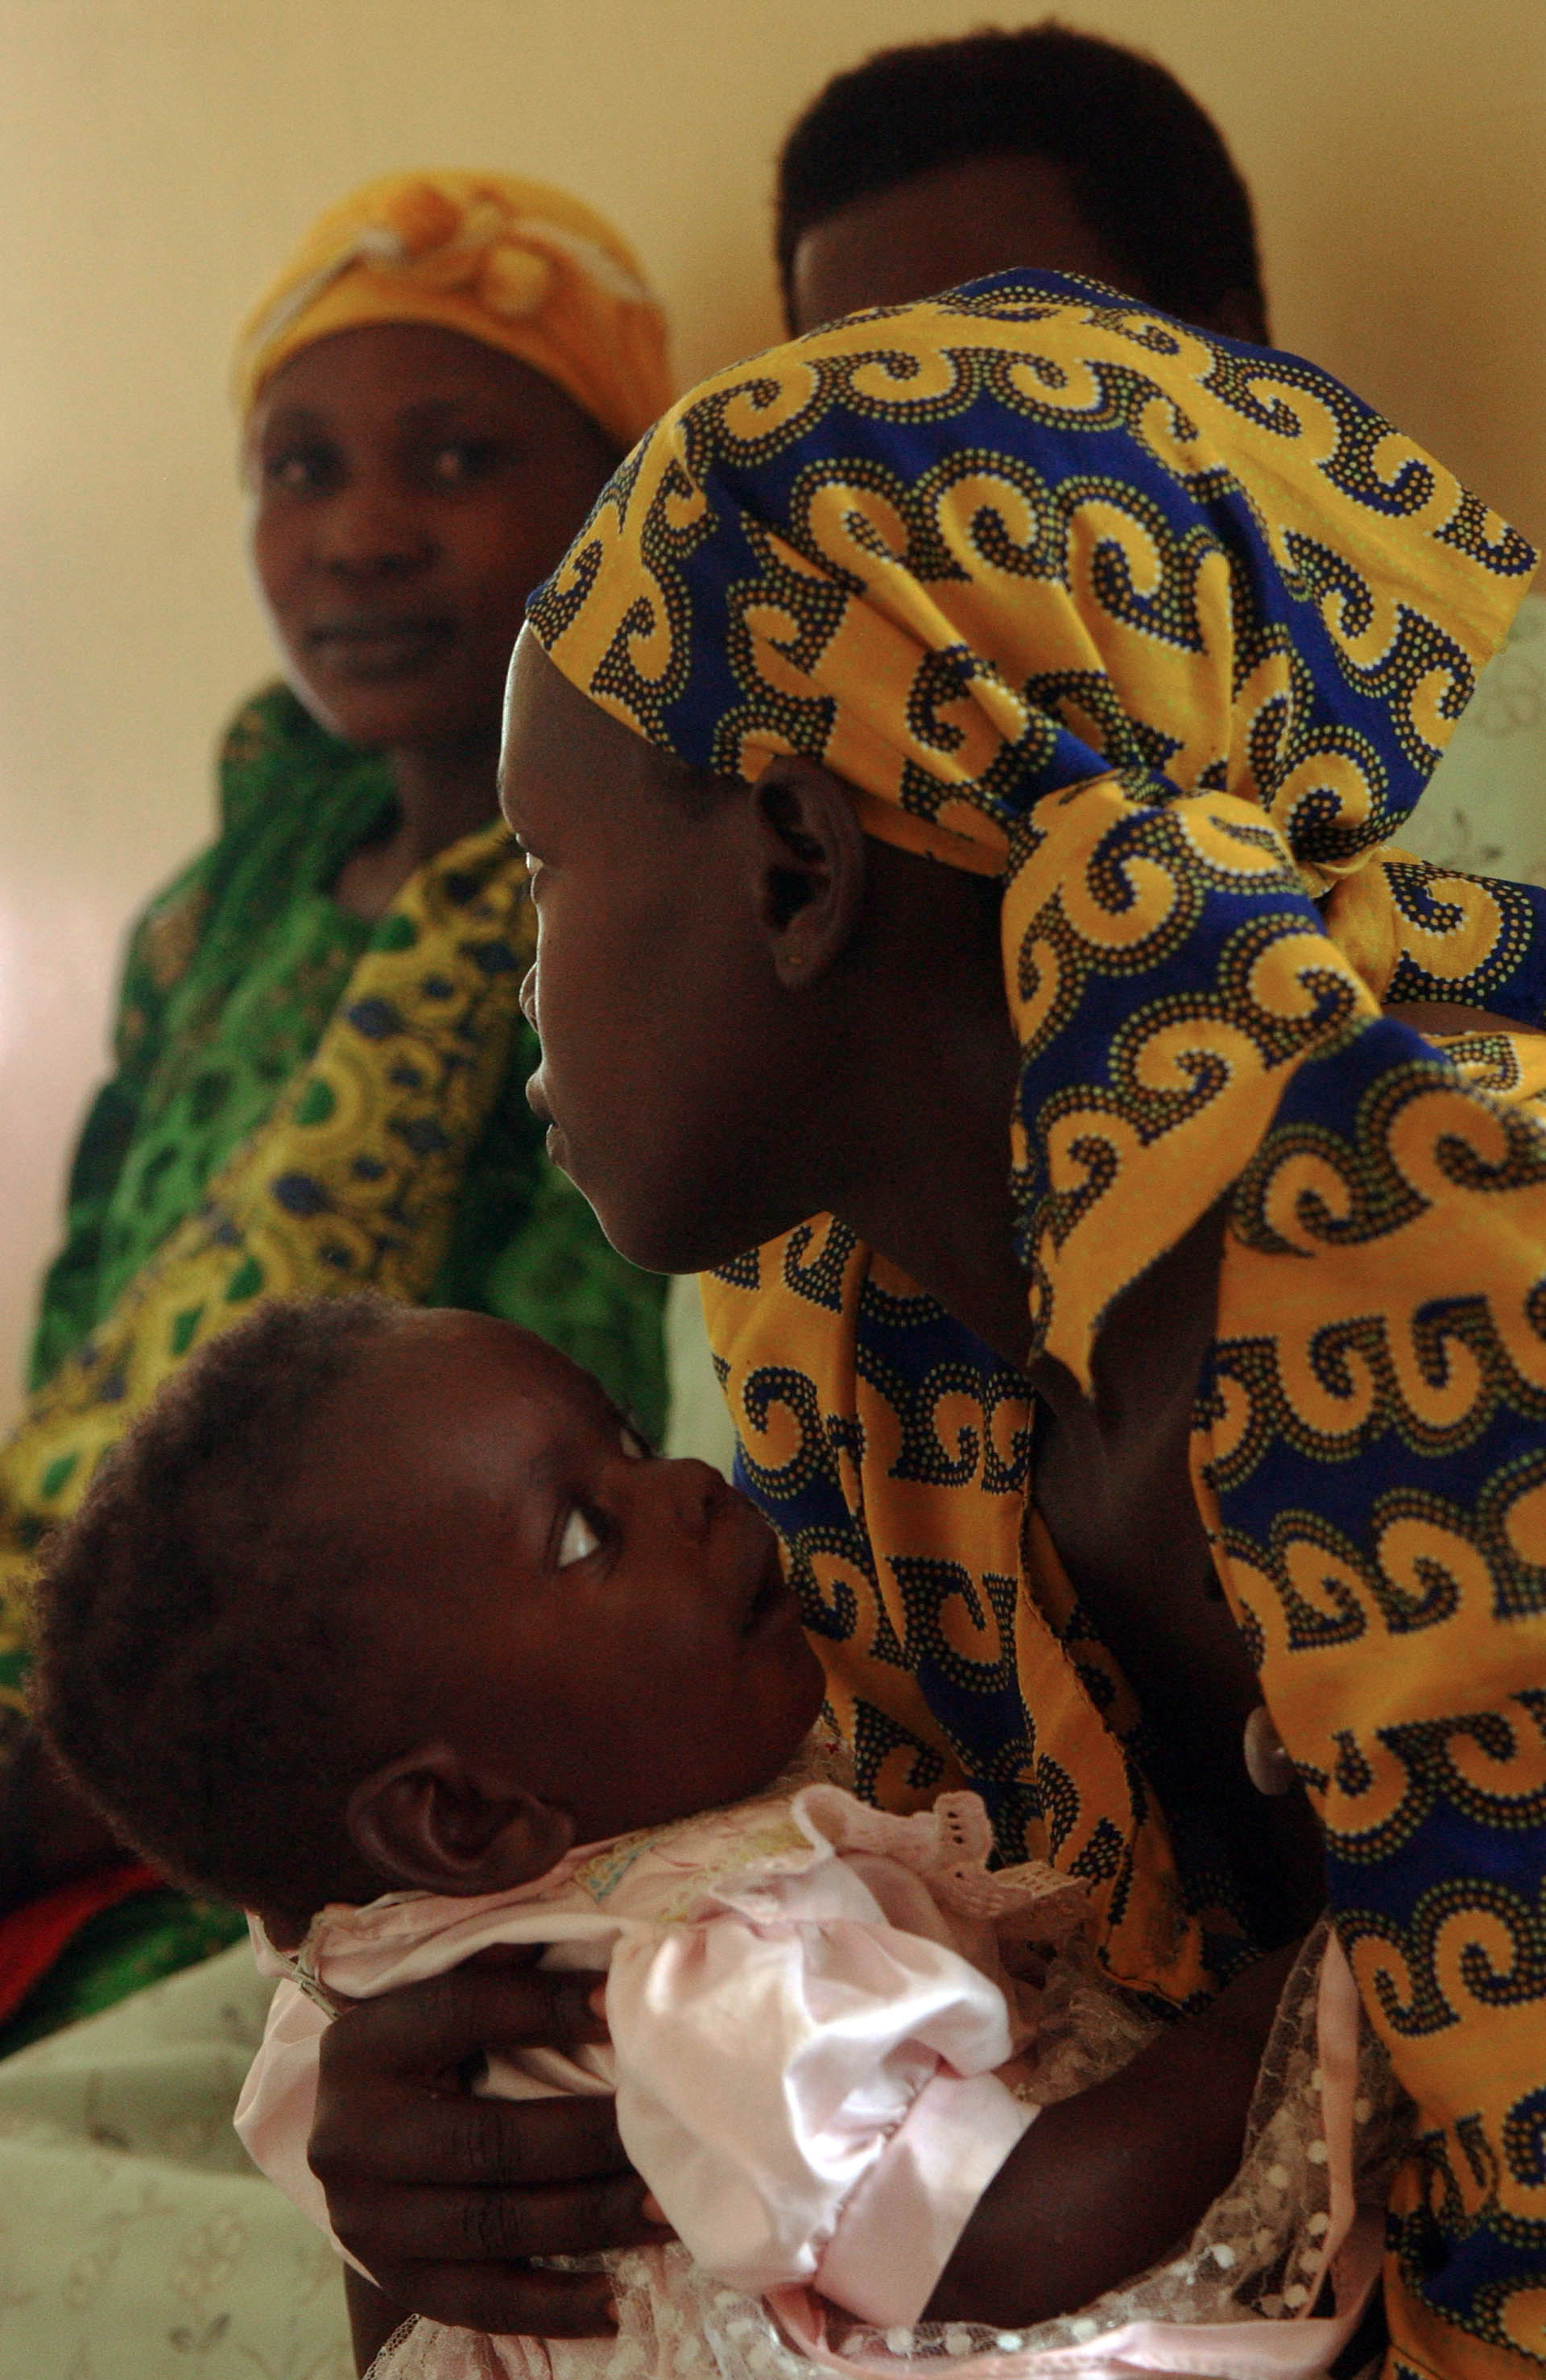 Woman and child at a clinic in Uganda